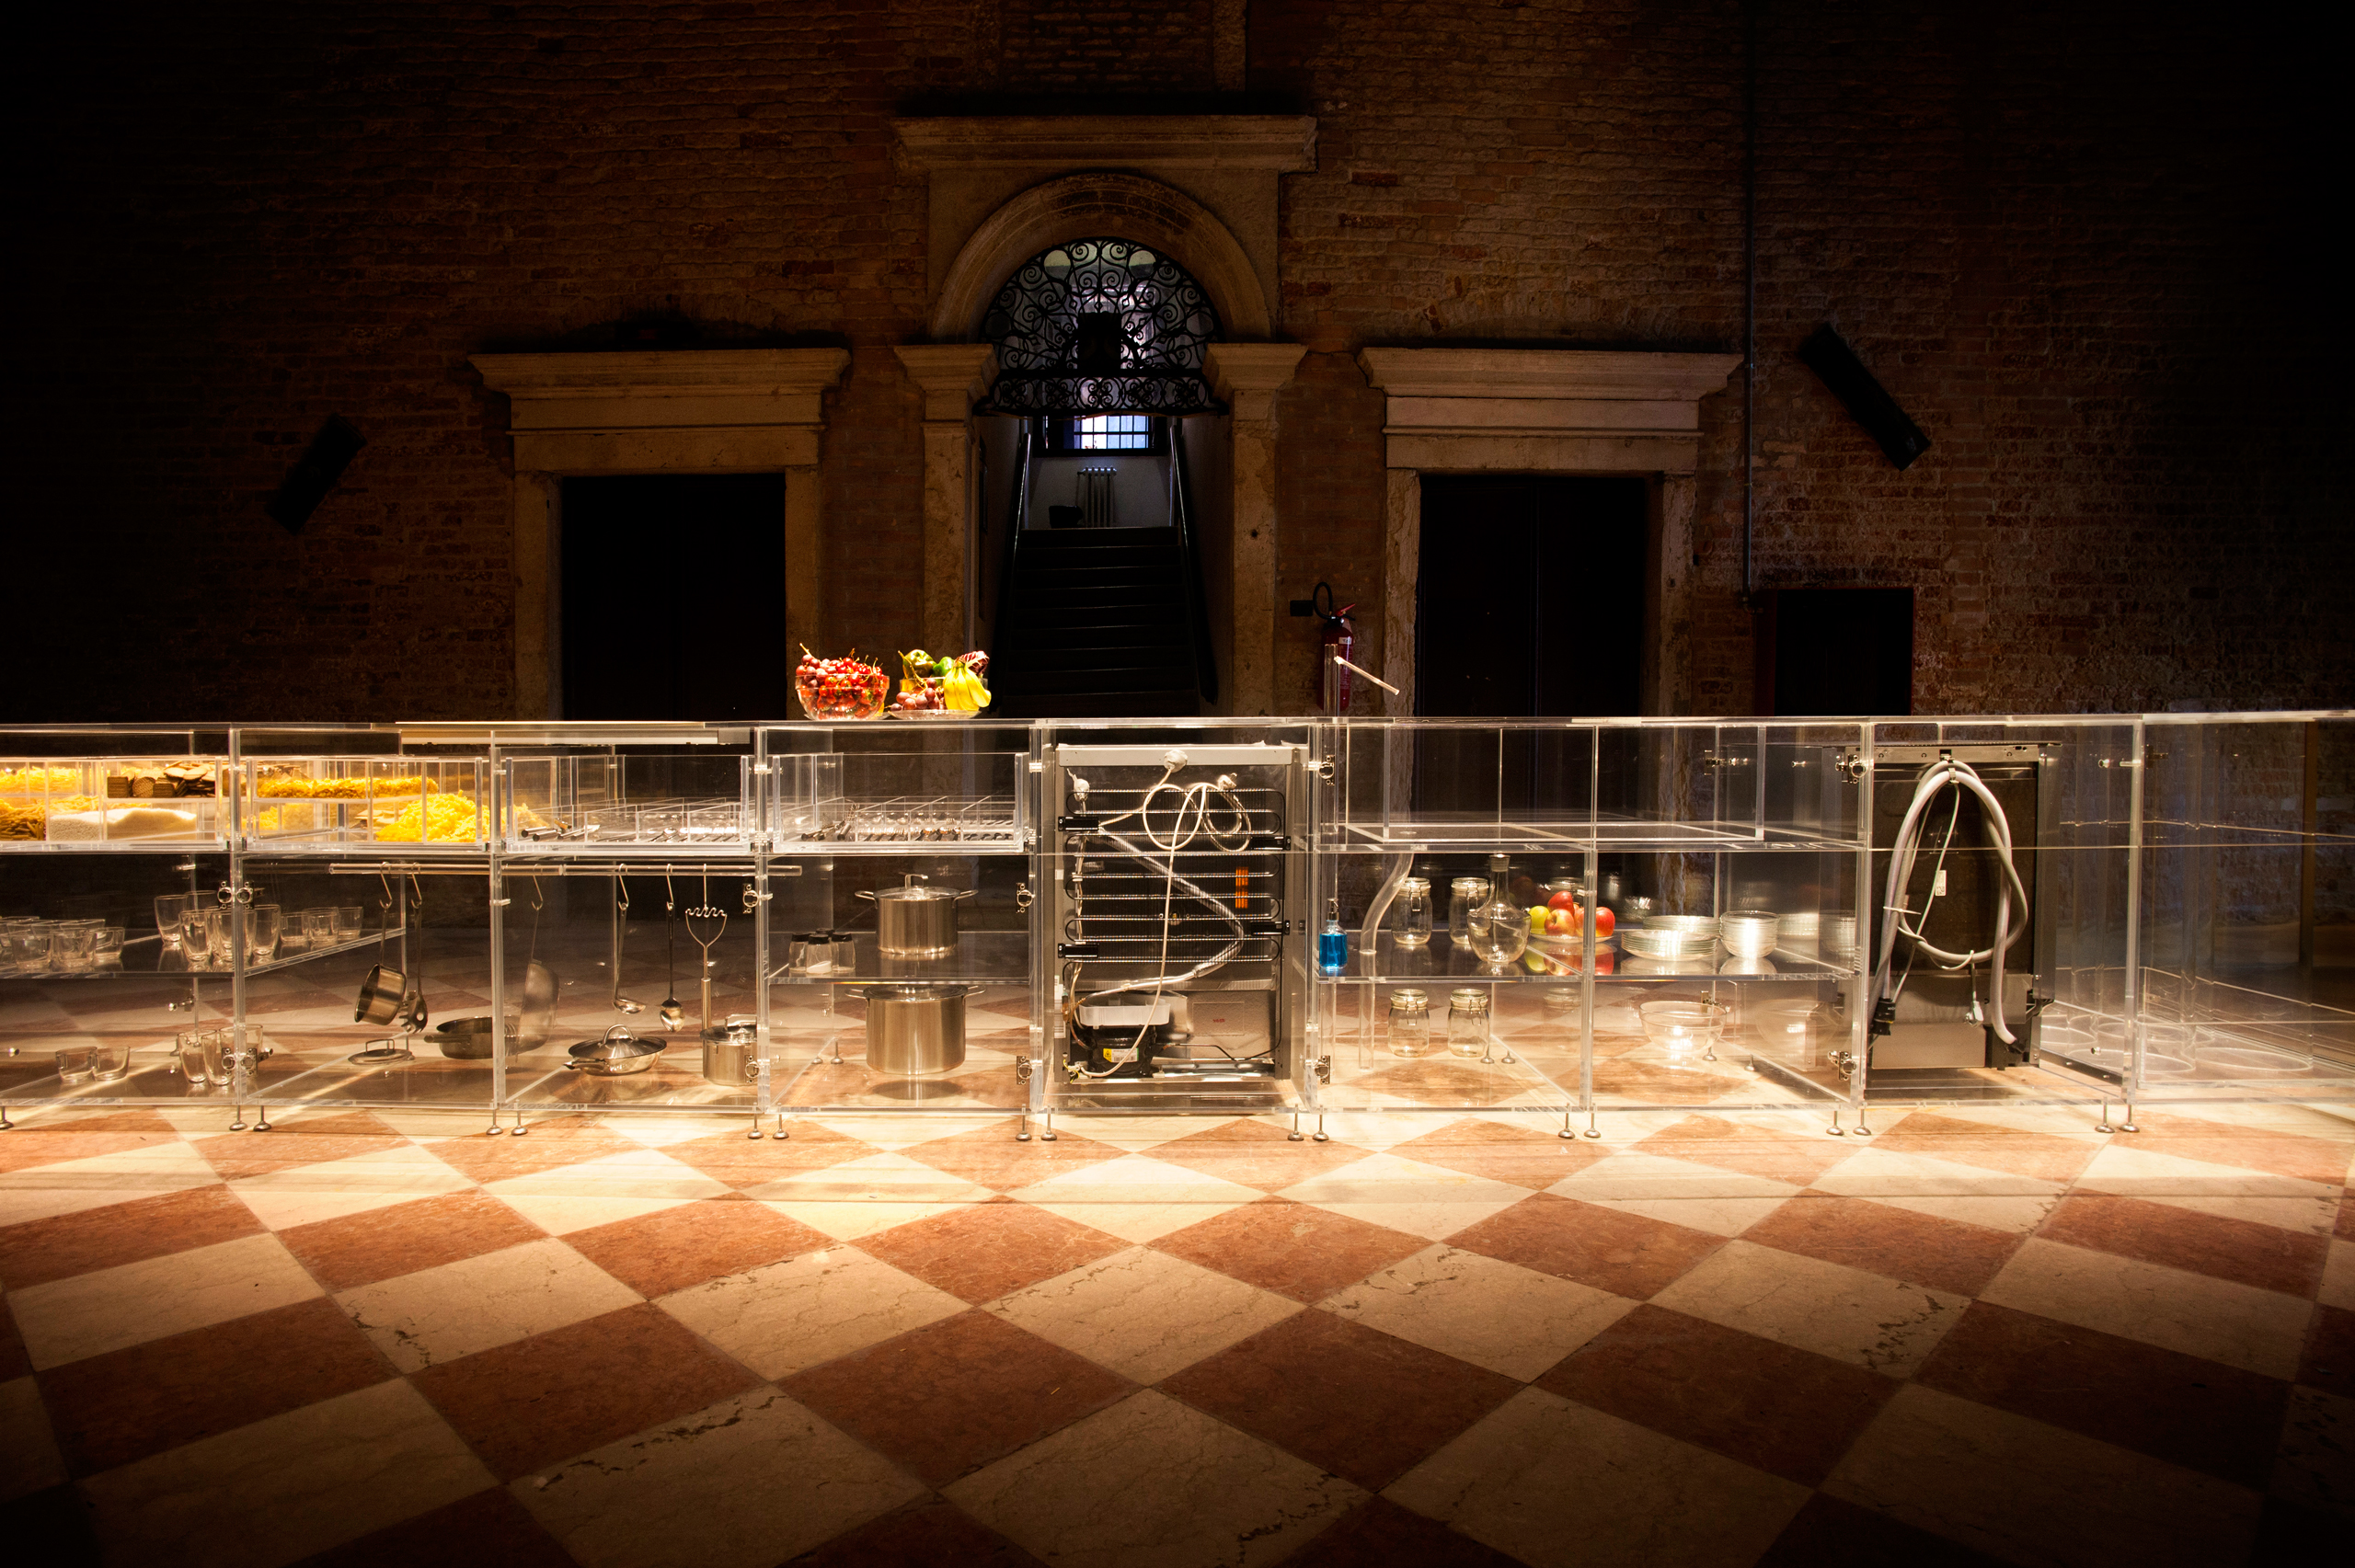 MVRDV present Infinity Kitchen at Venice Biennale 2016